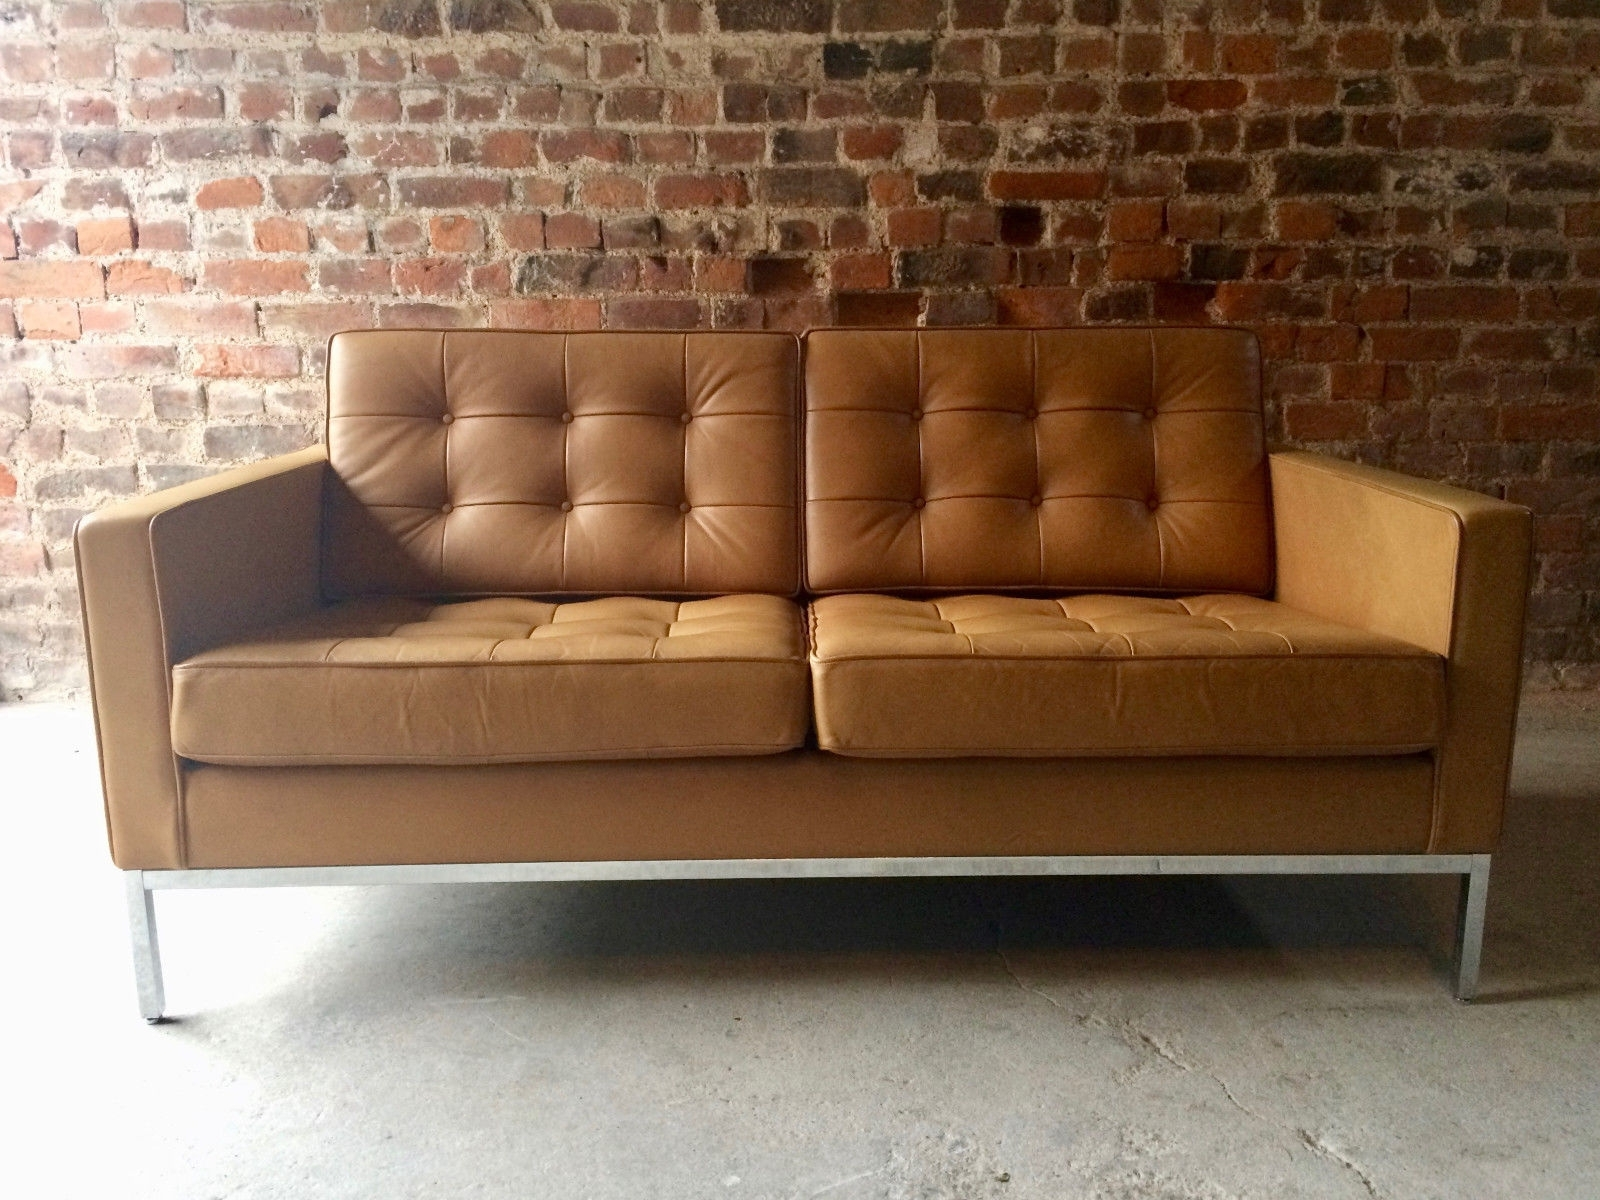 Vintage 2 Seater Leather Sofaflorence Knoll For Knoll For Sale With Most Recent Florence Sofas And Loveseats (View 12 of 15)